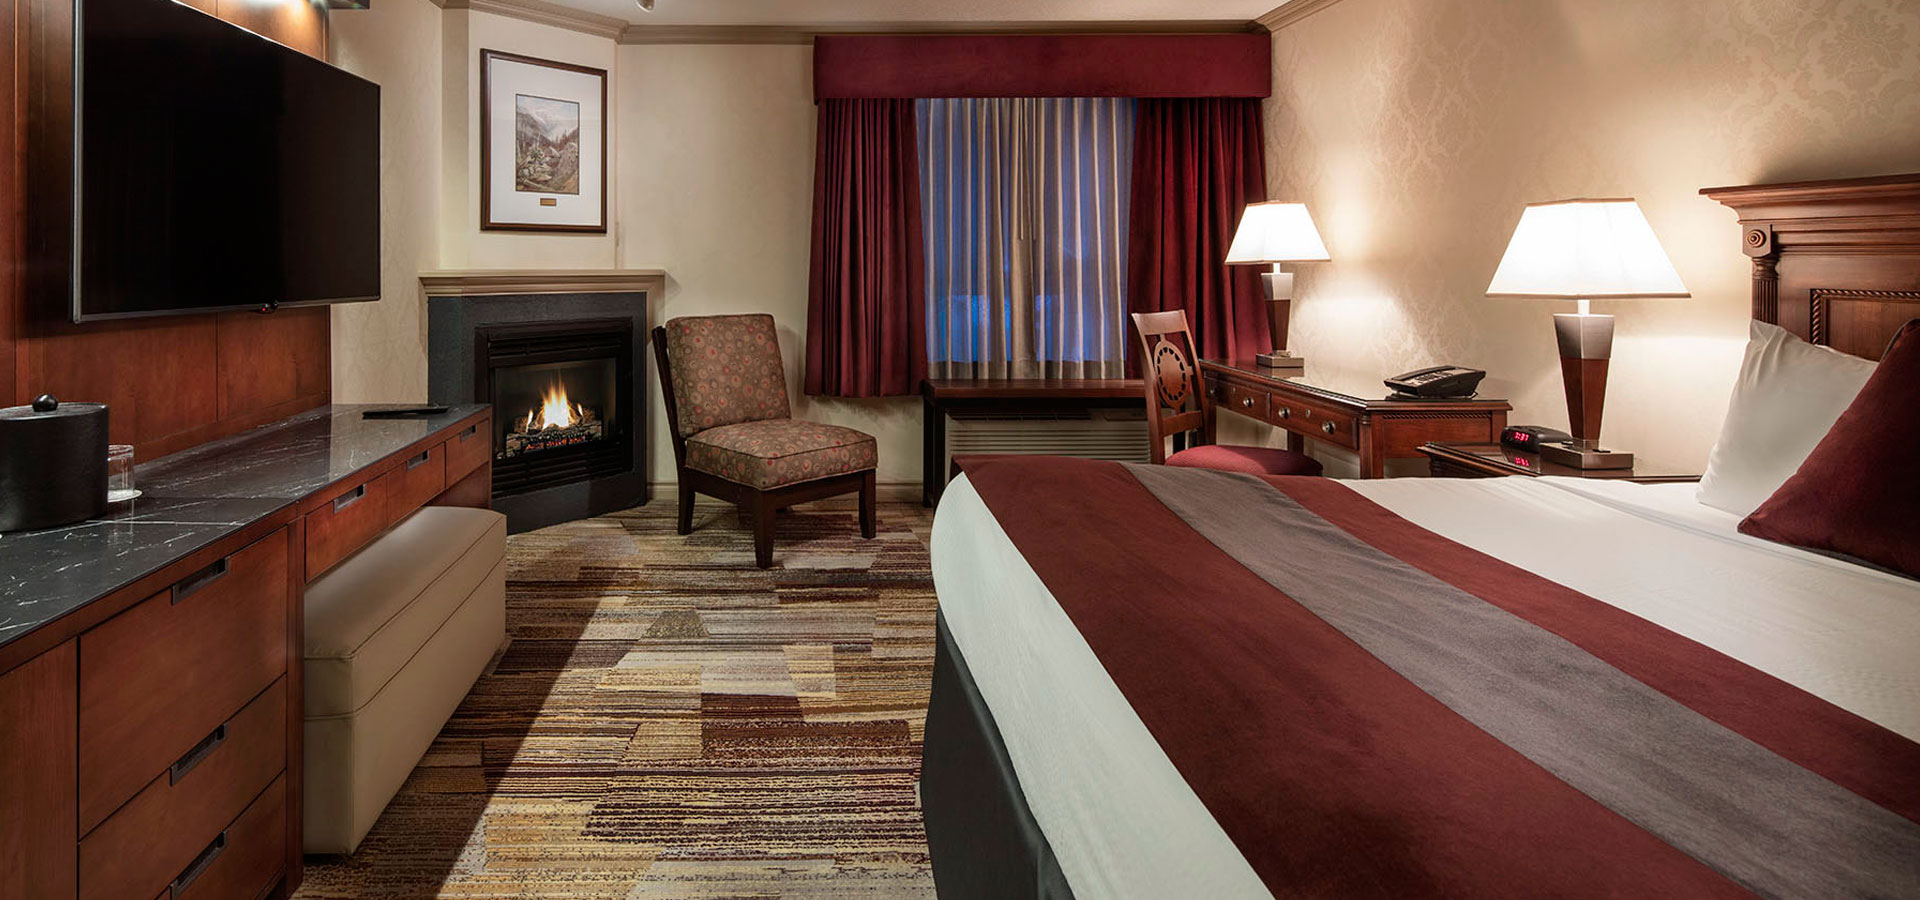 Royal Canadian Lodge in Banff Accommodations